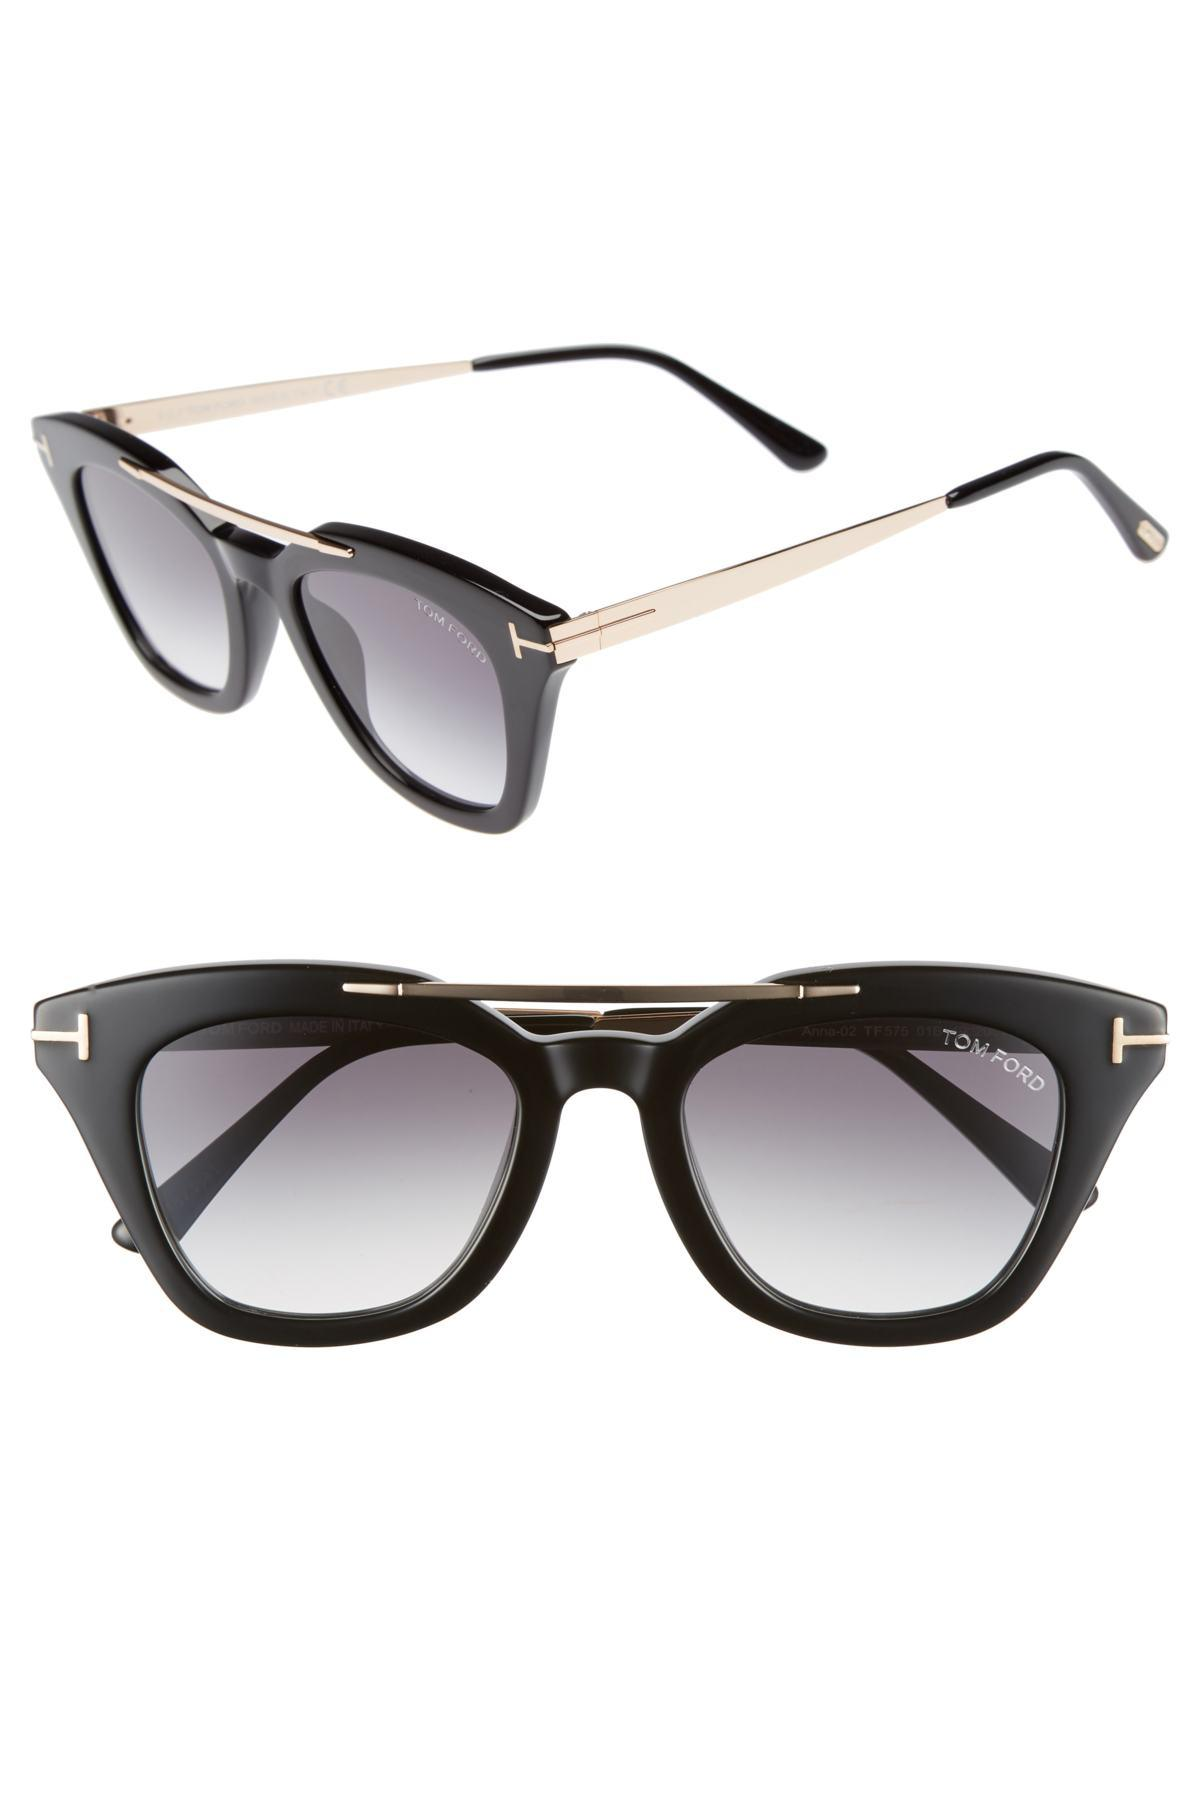 fe1c4fd2d4 Lyst - Tom Ford Anna 49mm Gradient Sunglasses in Black